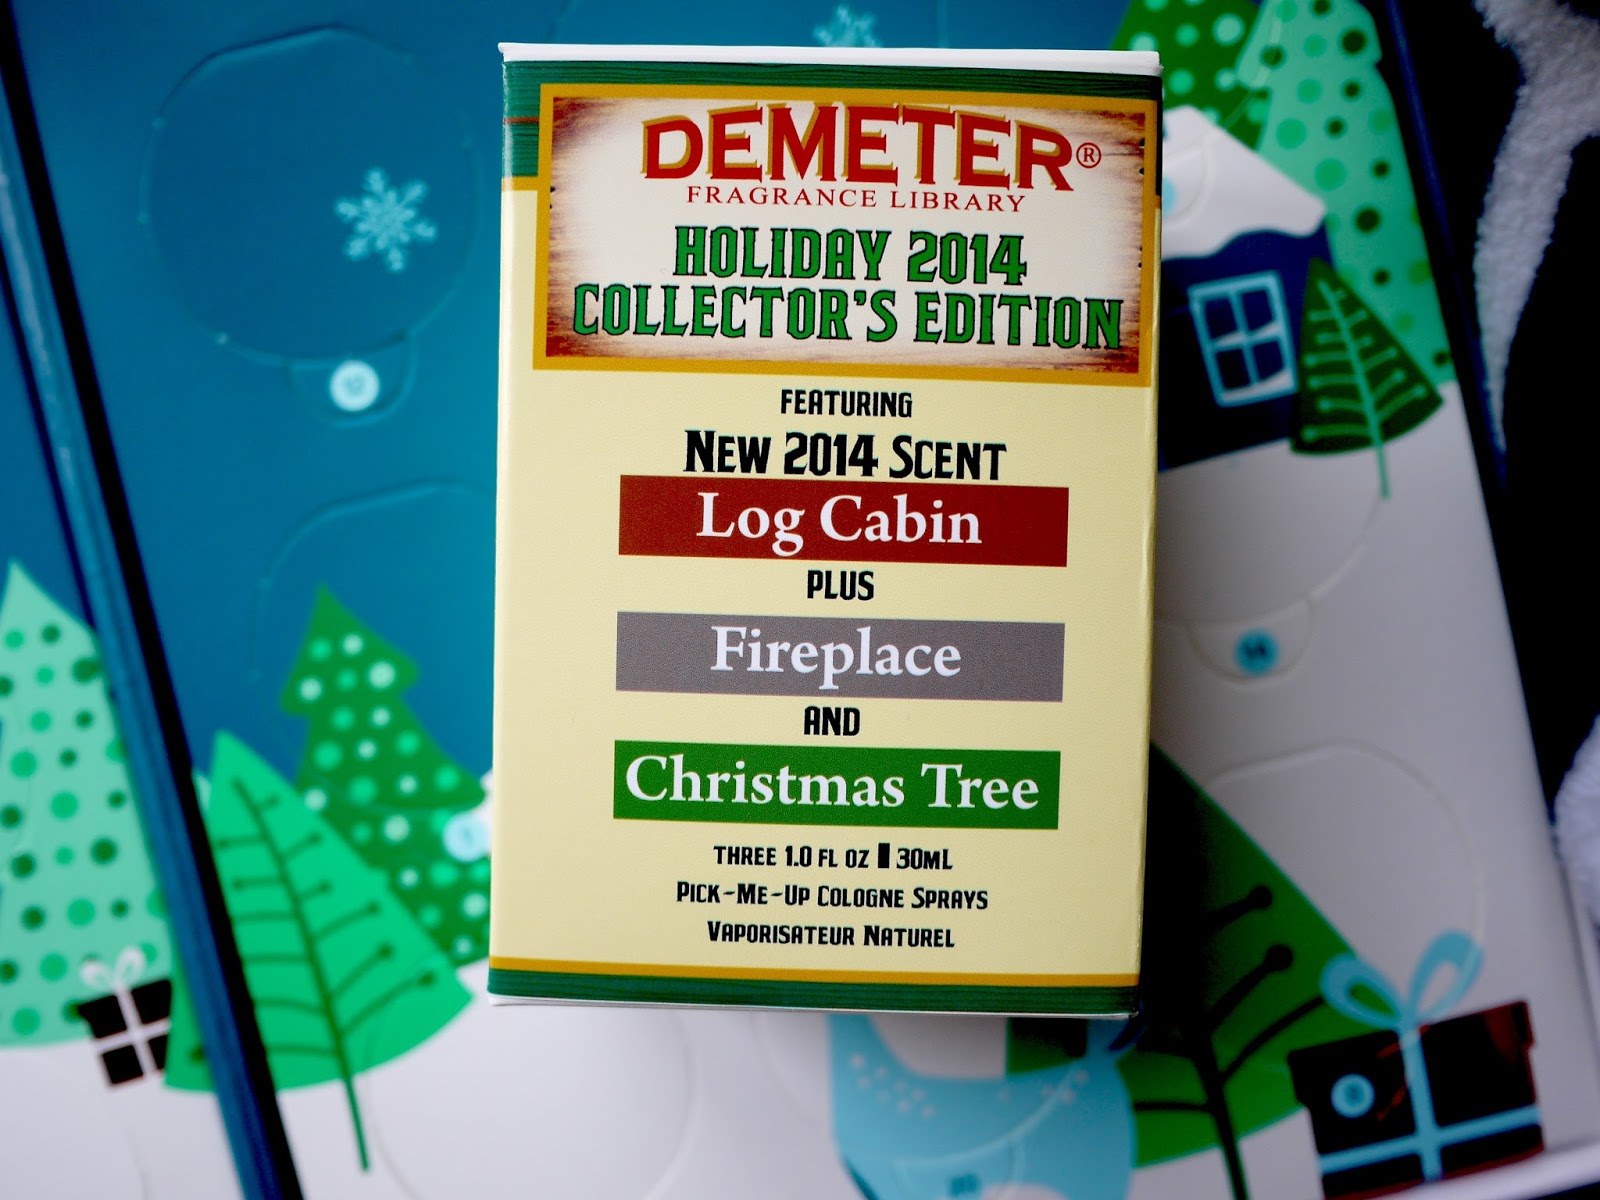 Demeter Holiday 2014 Collector's Edition christmas tree fireplace log cabin review